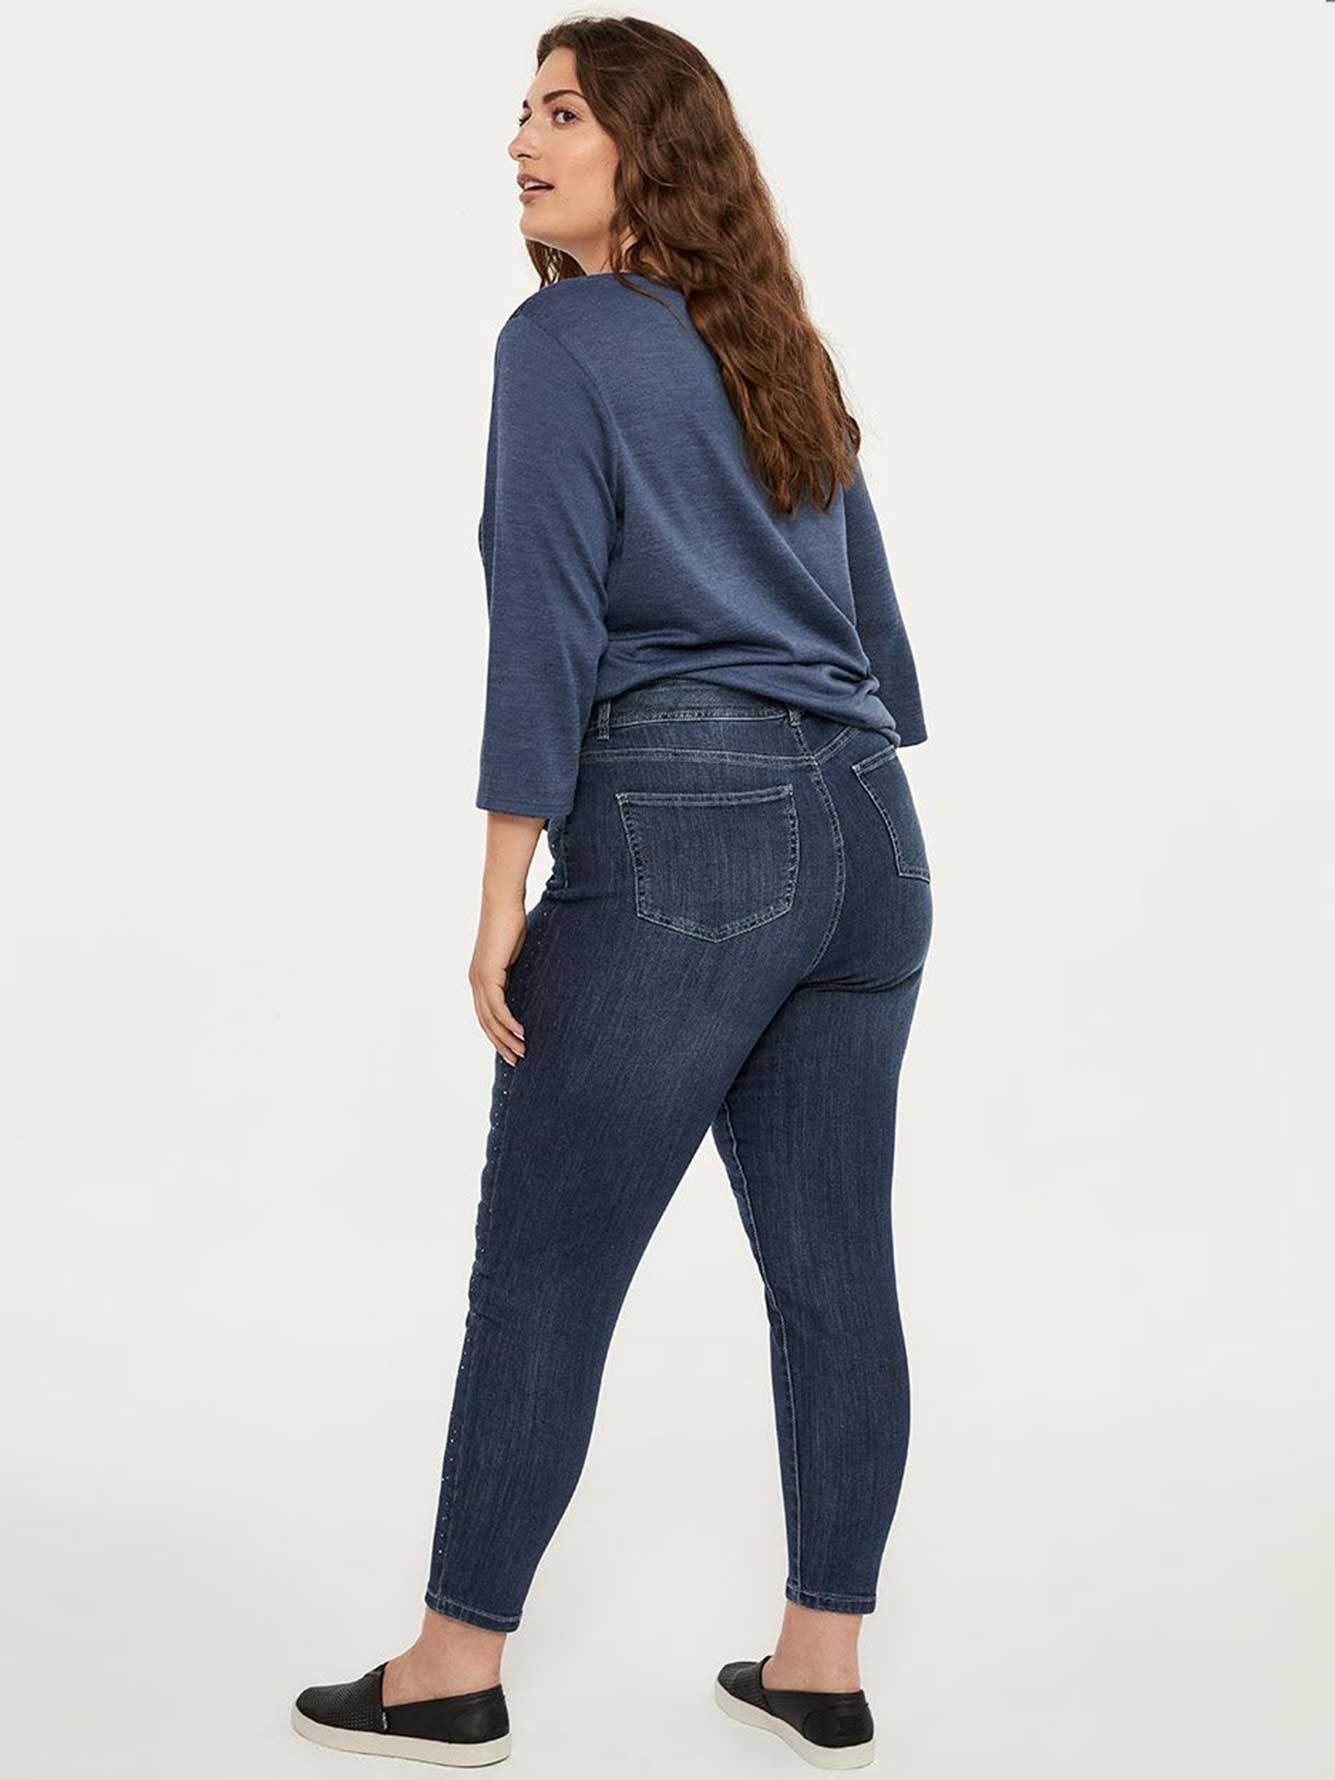 ONLINE ONLY - Tall Slightly Curvy Skinny Ankle Jean with Rhinestones - d/C JEANS